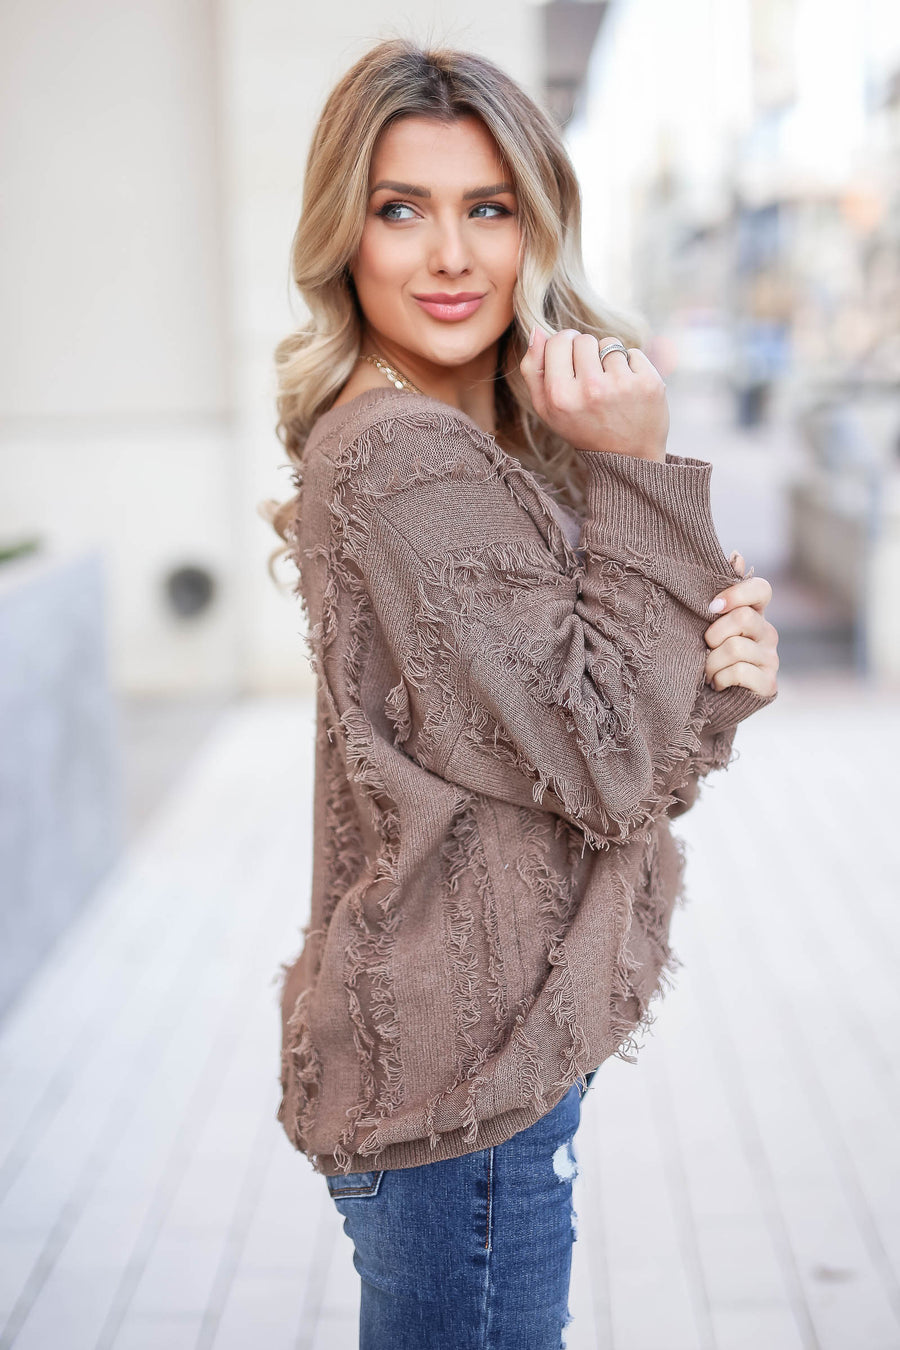 Best Fringe Forever Sweater - Mocha closet candy women's long sleeve v neck sweater sitting